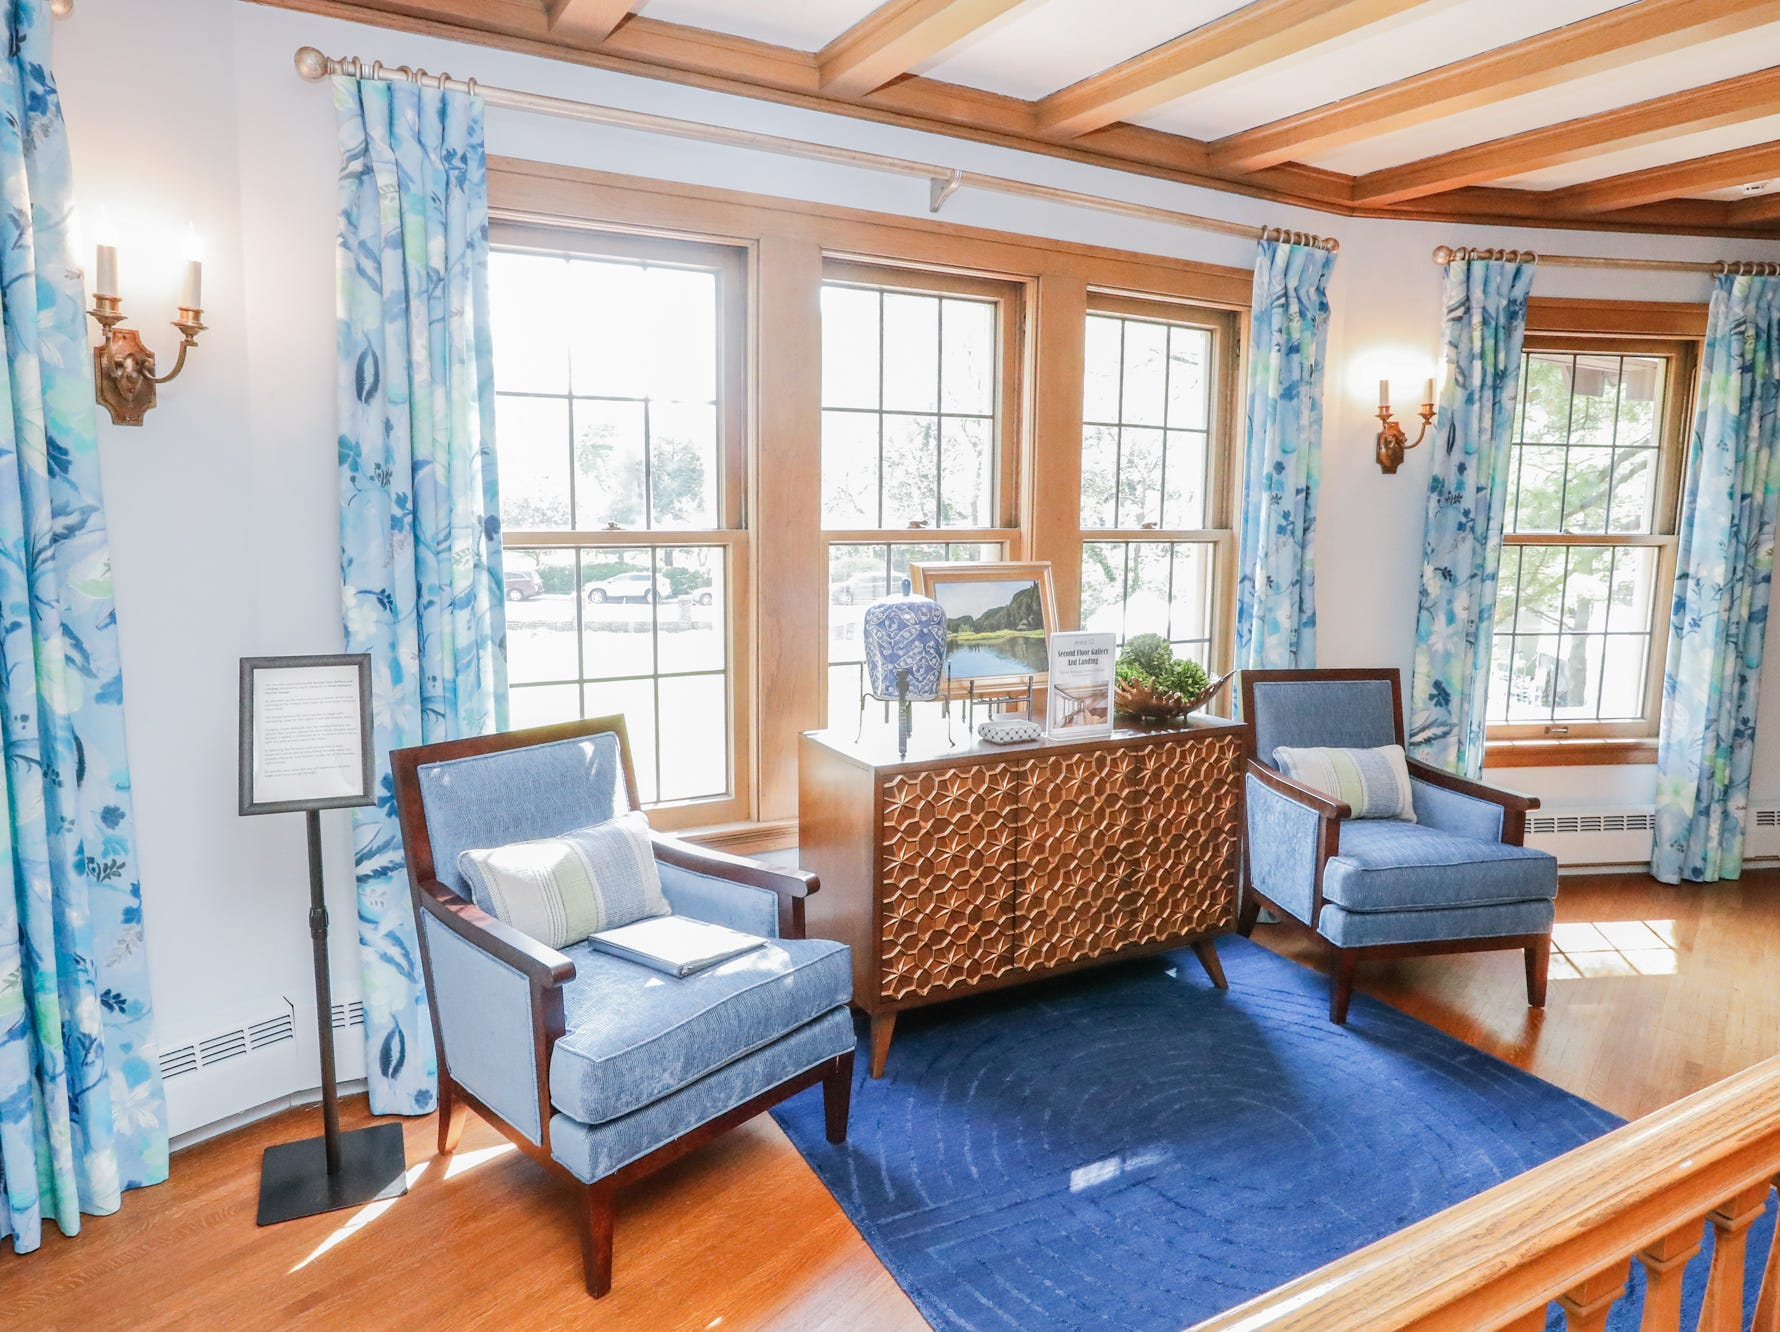 """The """"Second Floor Gallery and Landing"""" designed by Diane Hallquist Interior Design, inside The 58th annual St. Margaret's Hospital Guild Decorators' Show House and Gardens, located at 4160 Washington Blvd., Indianapolis, on Wednesday, May 8, 2019."""